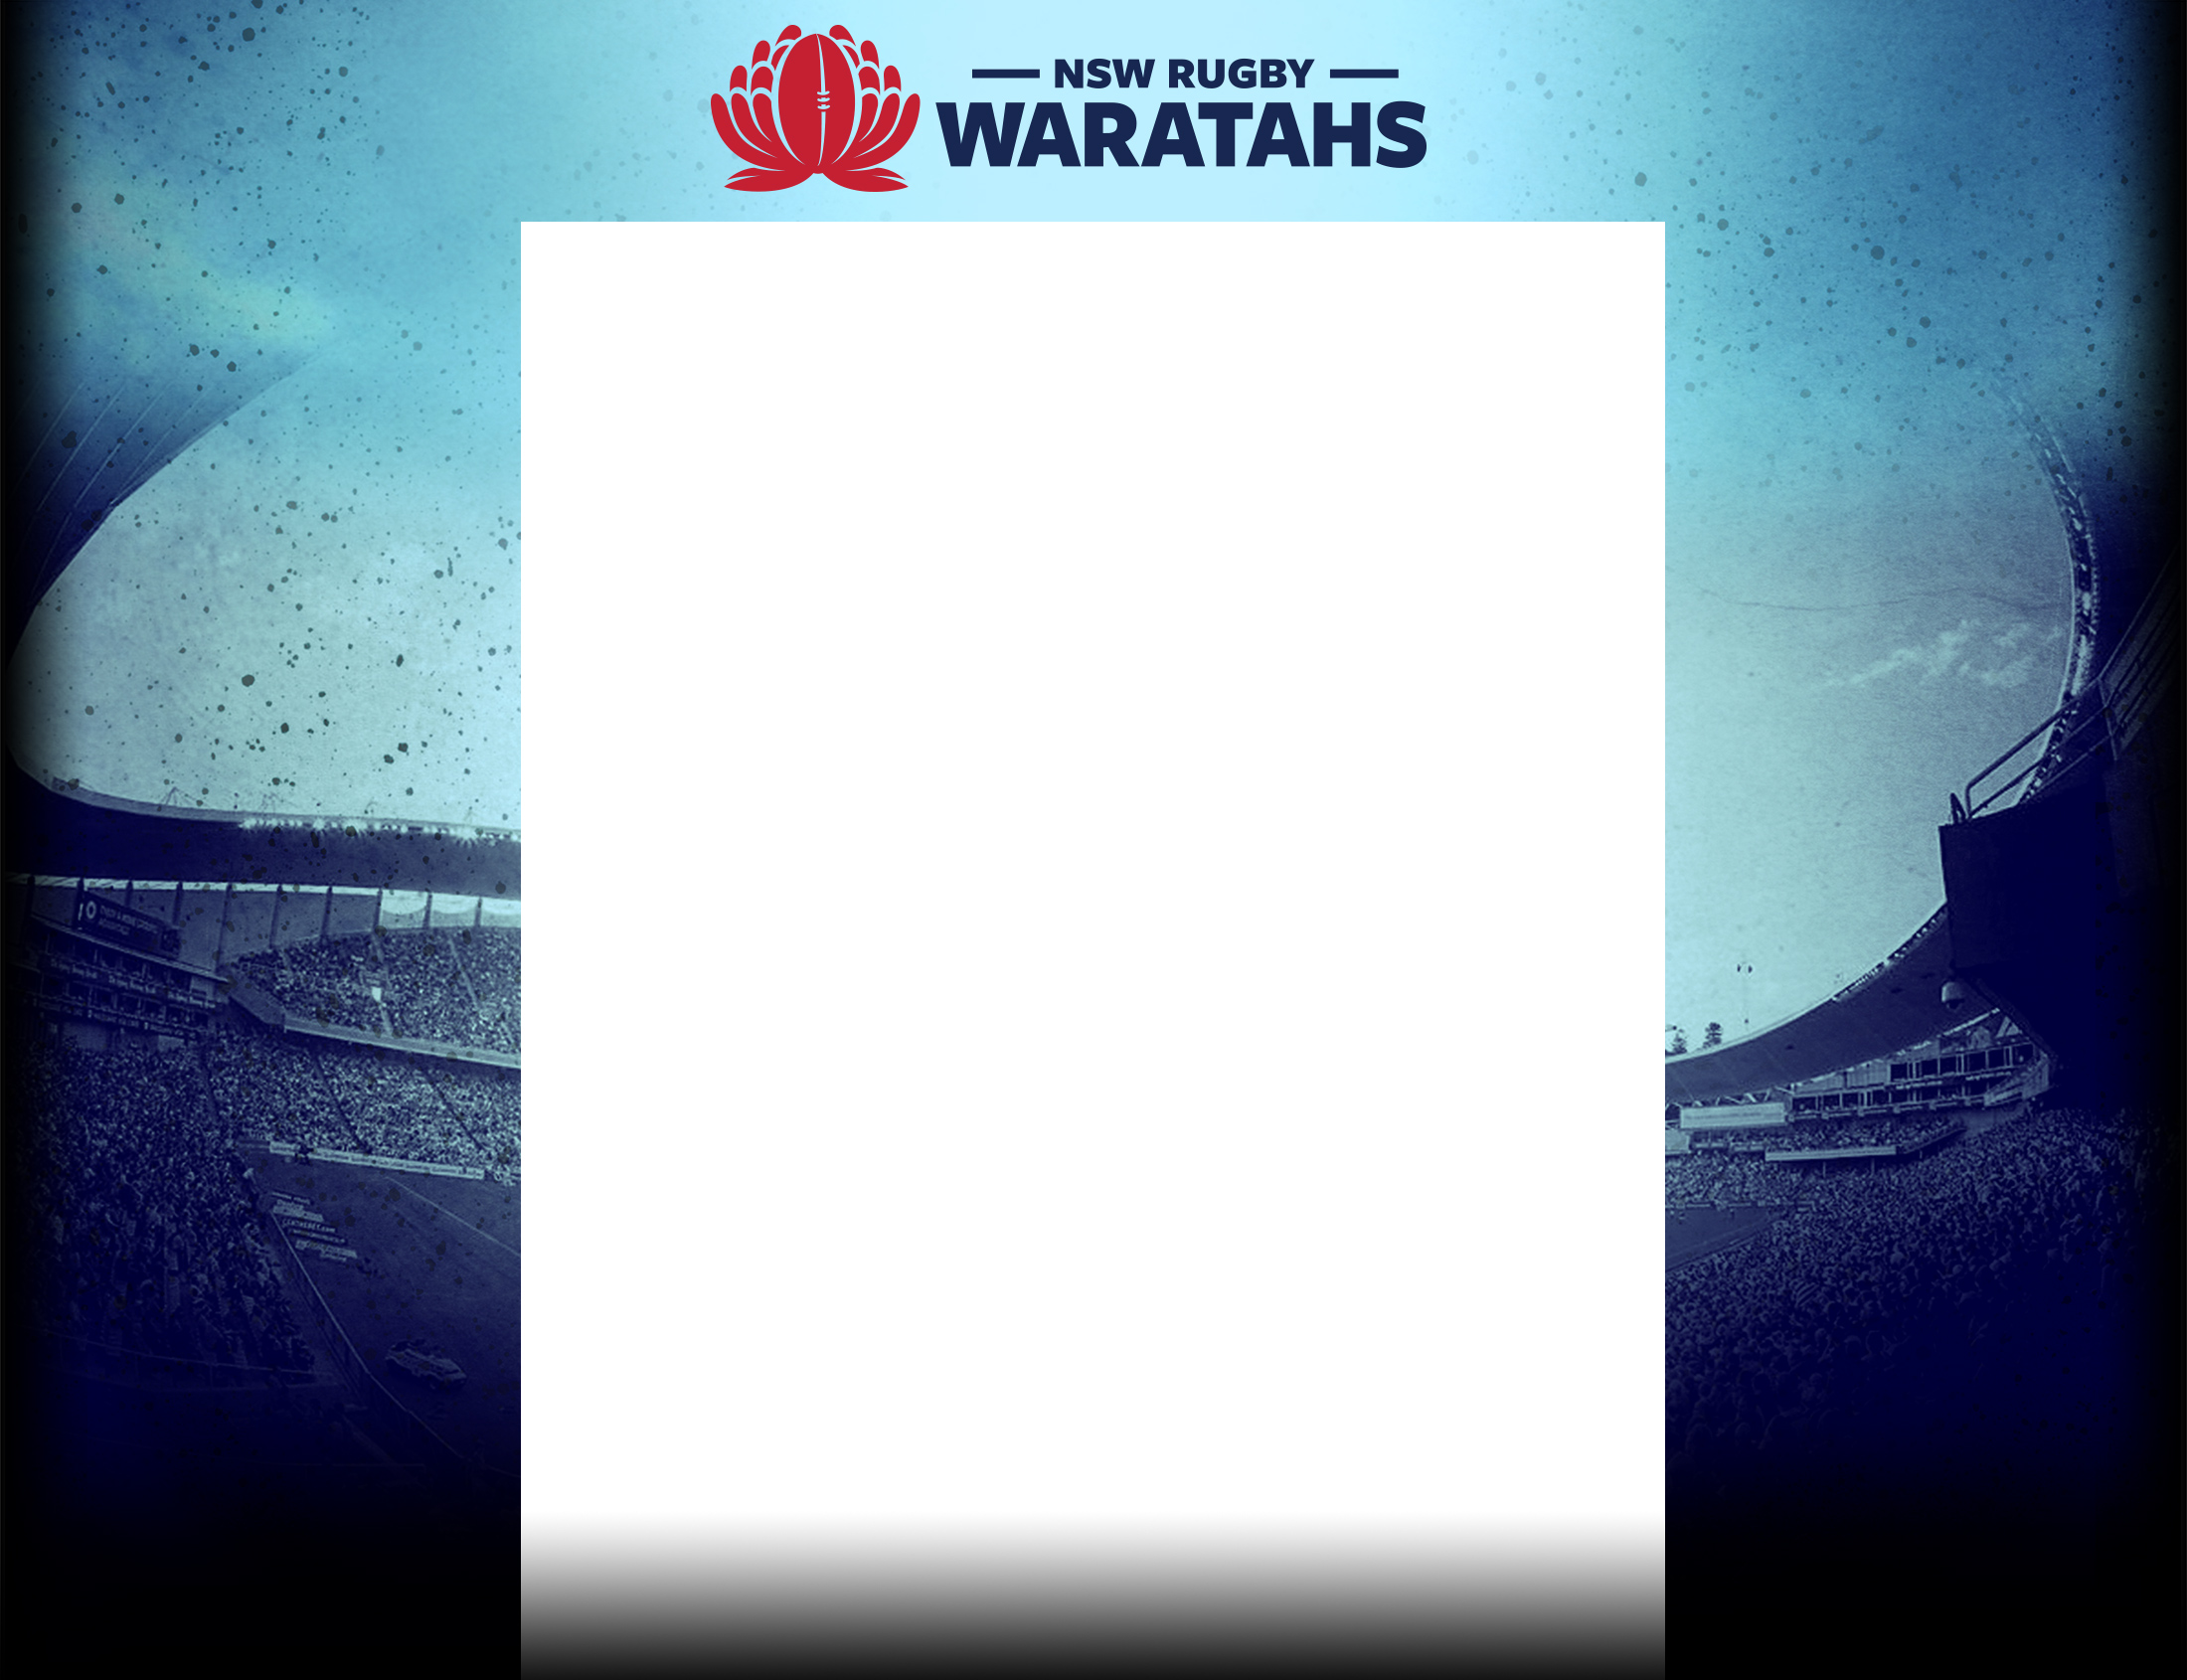 waratahs-2017-background.jpg